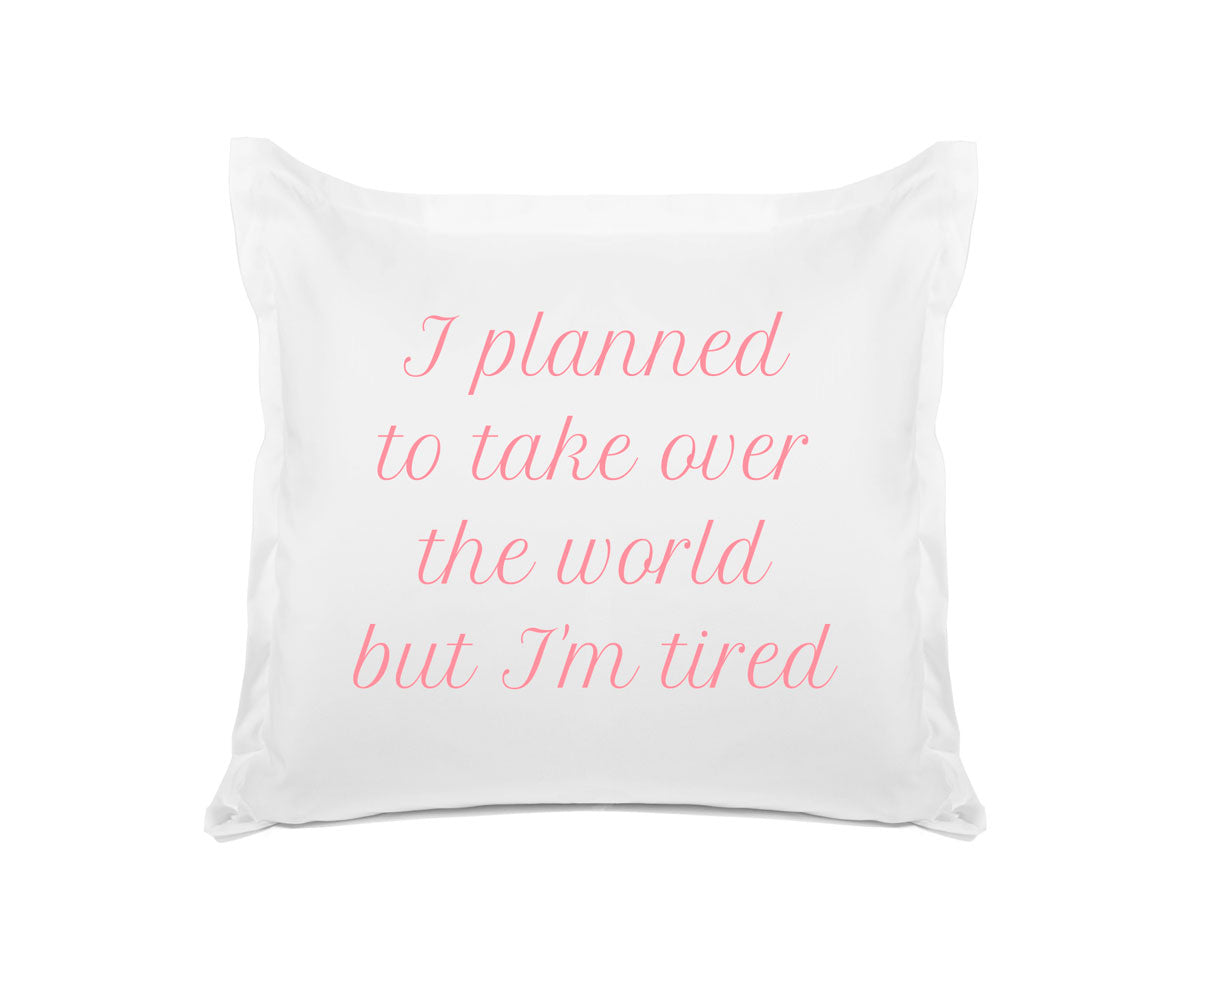 I Planned To Take Over The World But I'm Tired - Inspirational Quotes Pillowcase Collection-Di Lewis